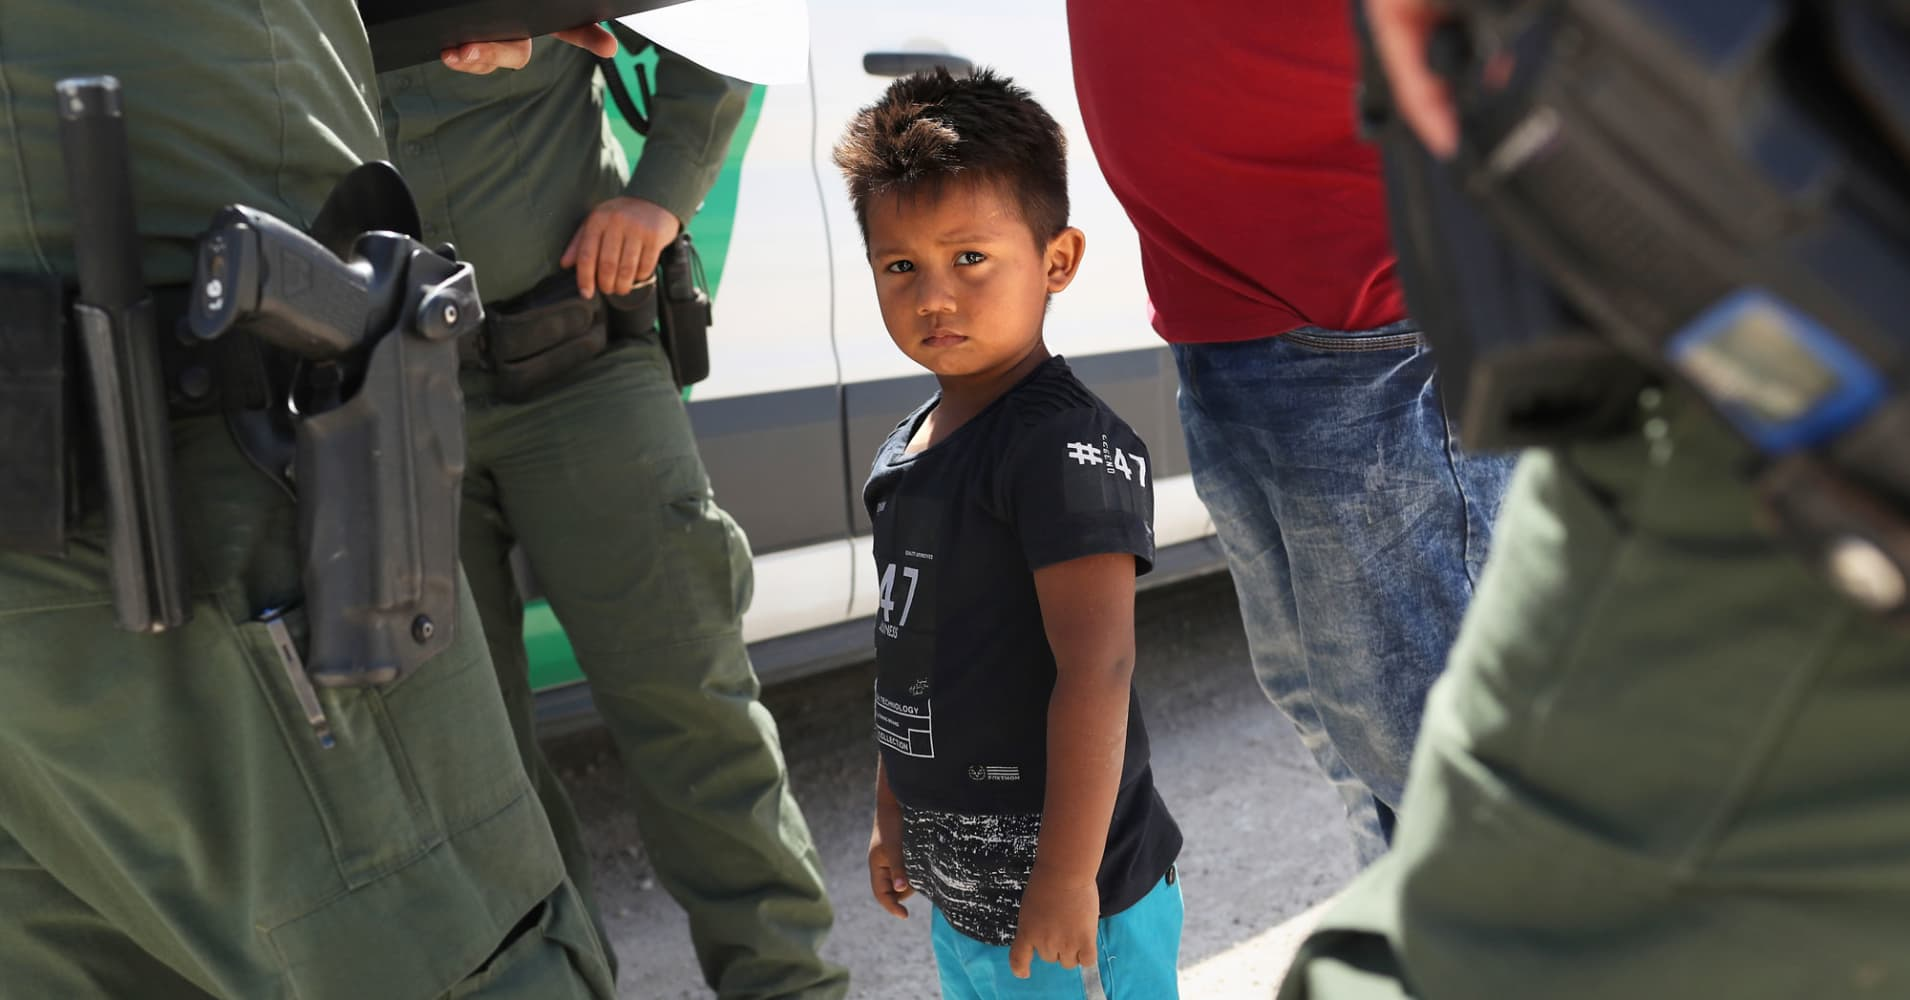 U.S. Border Patrol agents take into custody a father and son from Honduras near the U.S.-Mexico border on June 12, 2018 near Mission, Texas.